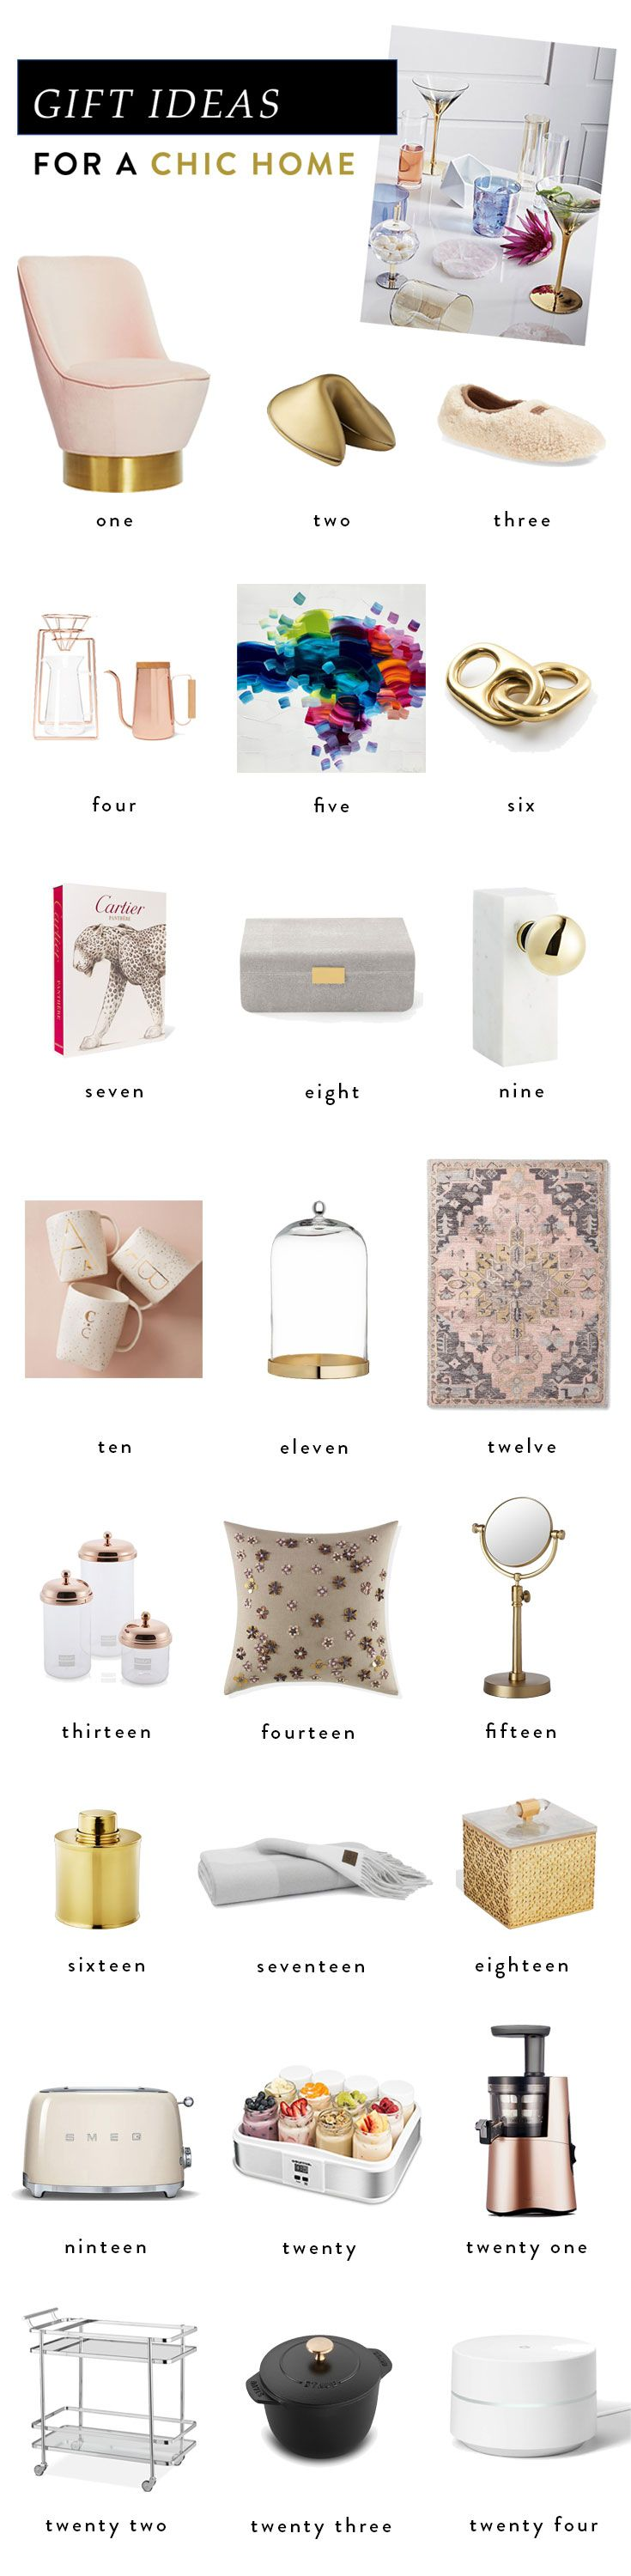 Gift Ideas for a Chic Home